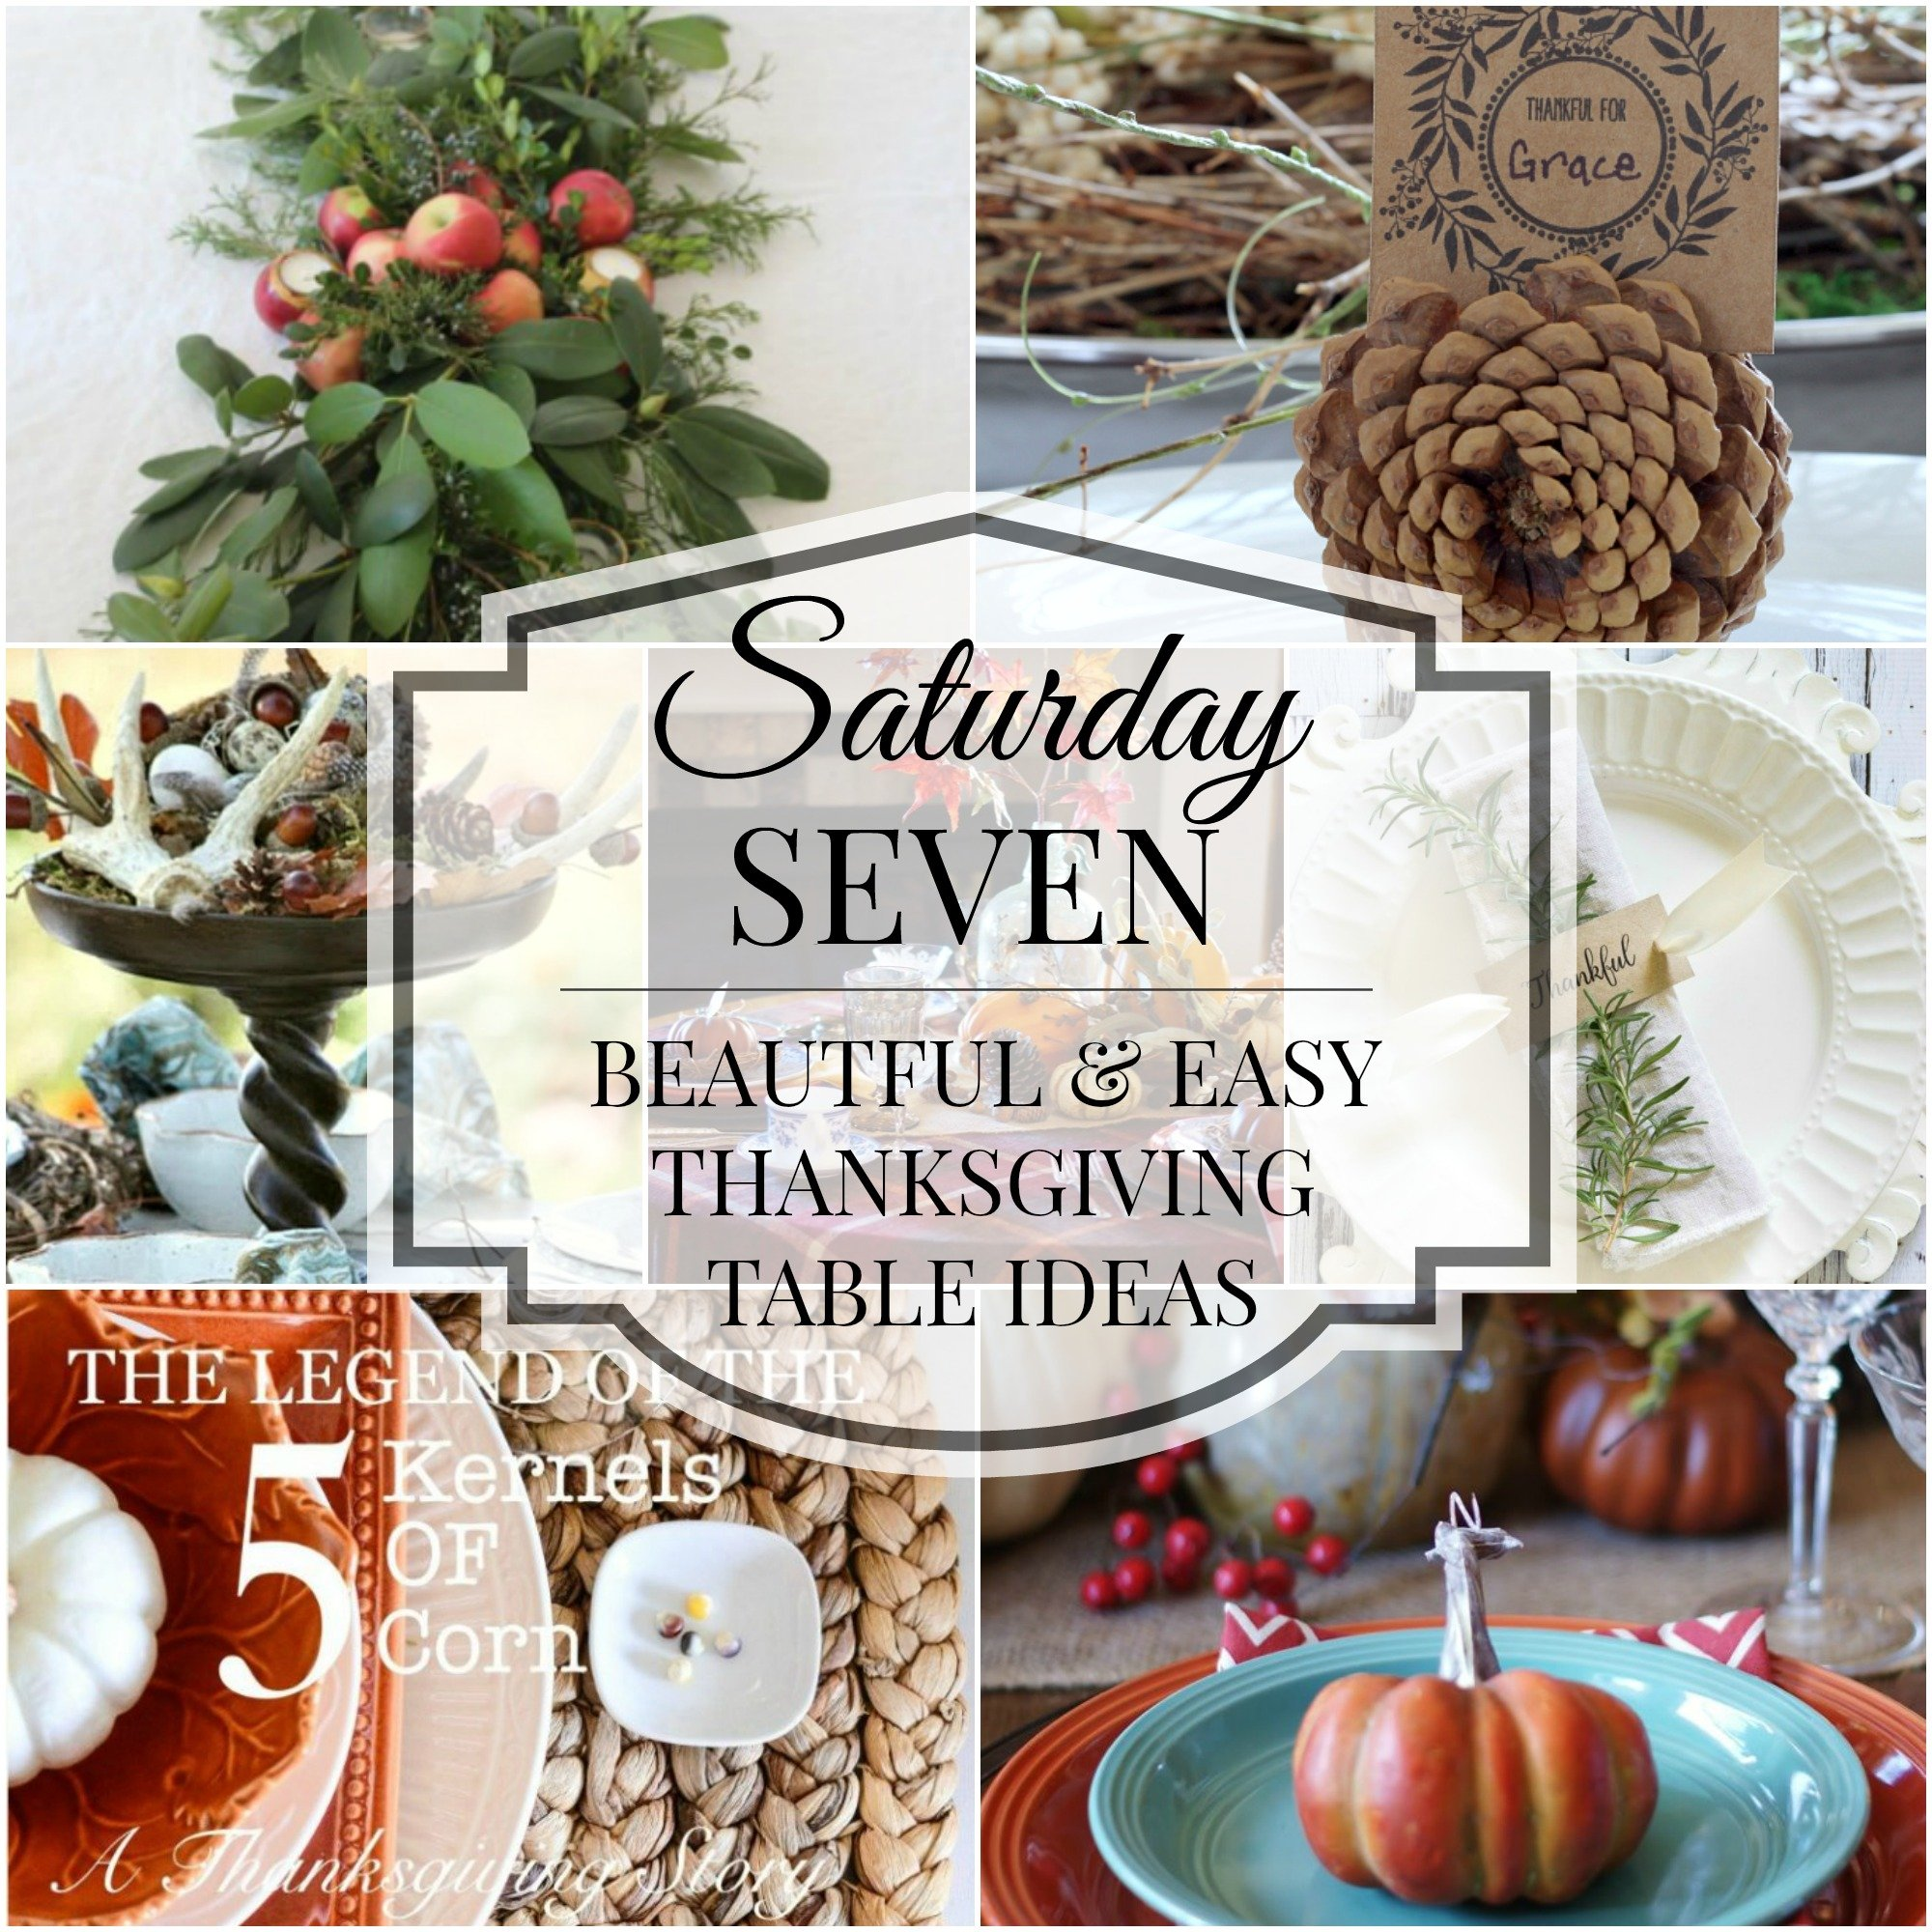 Saturday Seven Thanksgiving Tables title collage